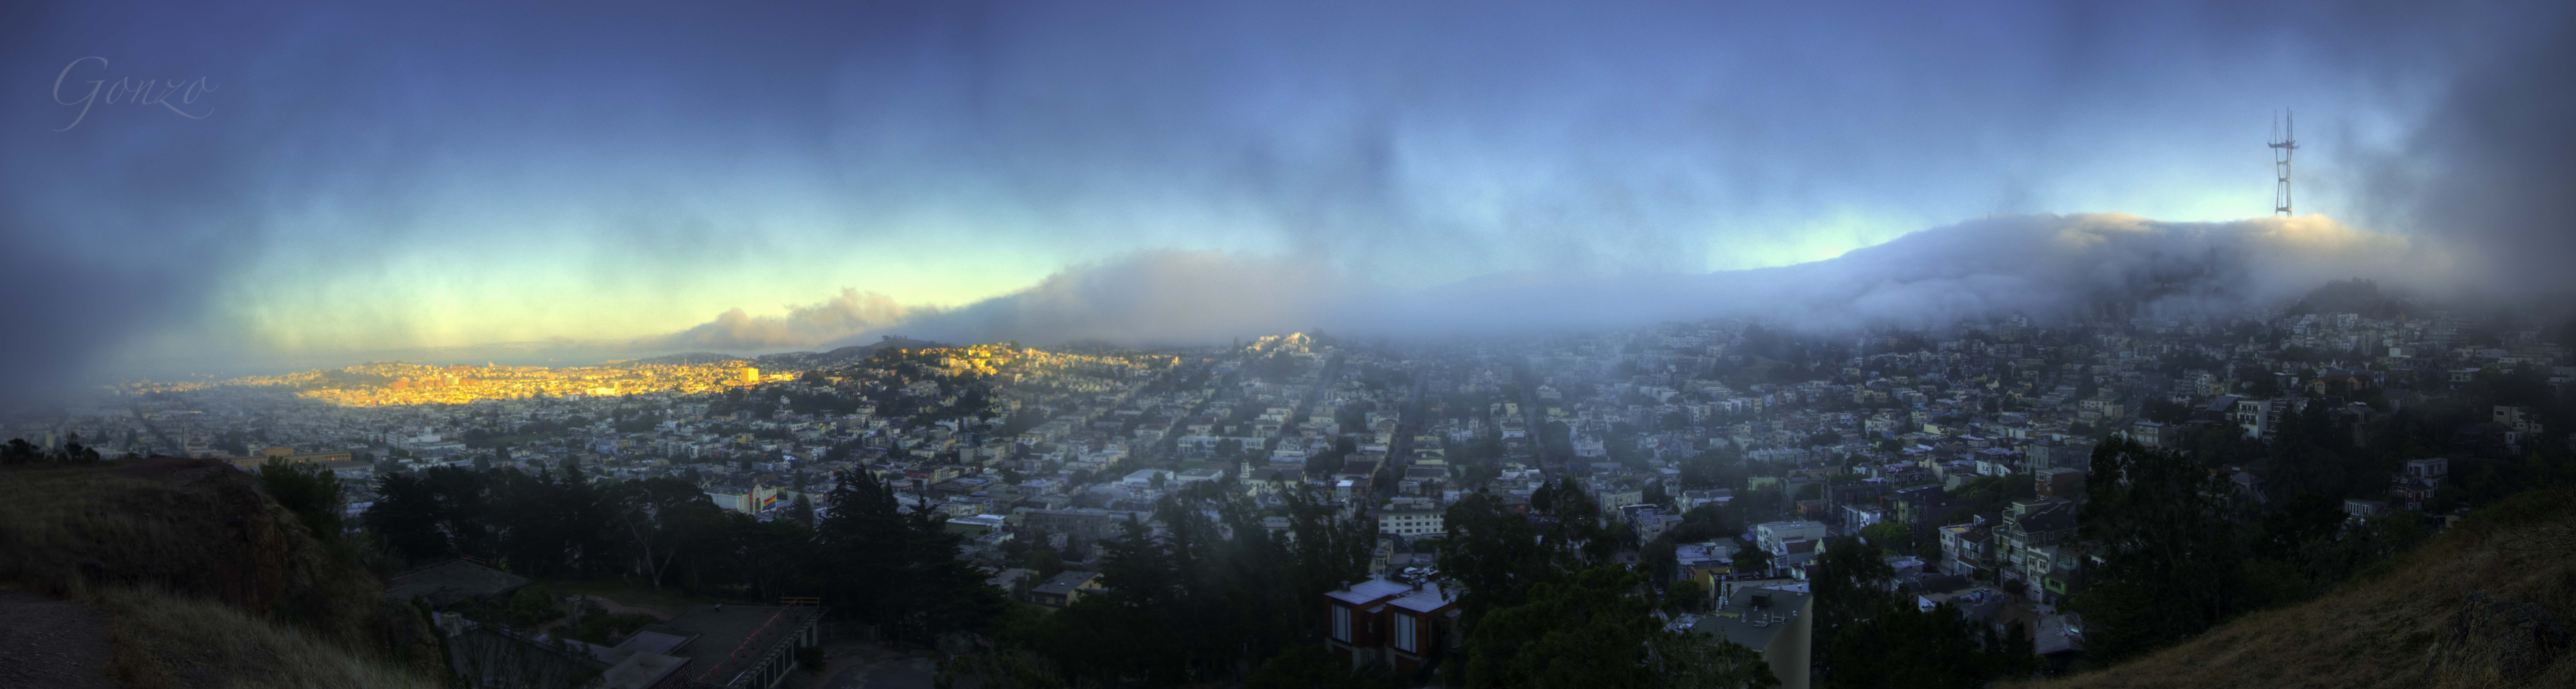 Attack Of The Fog!